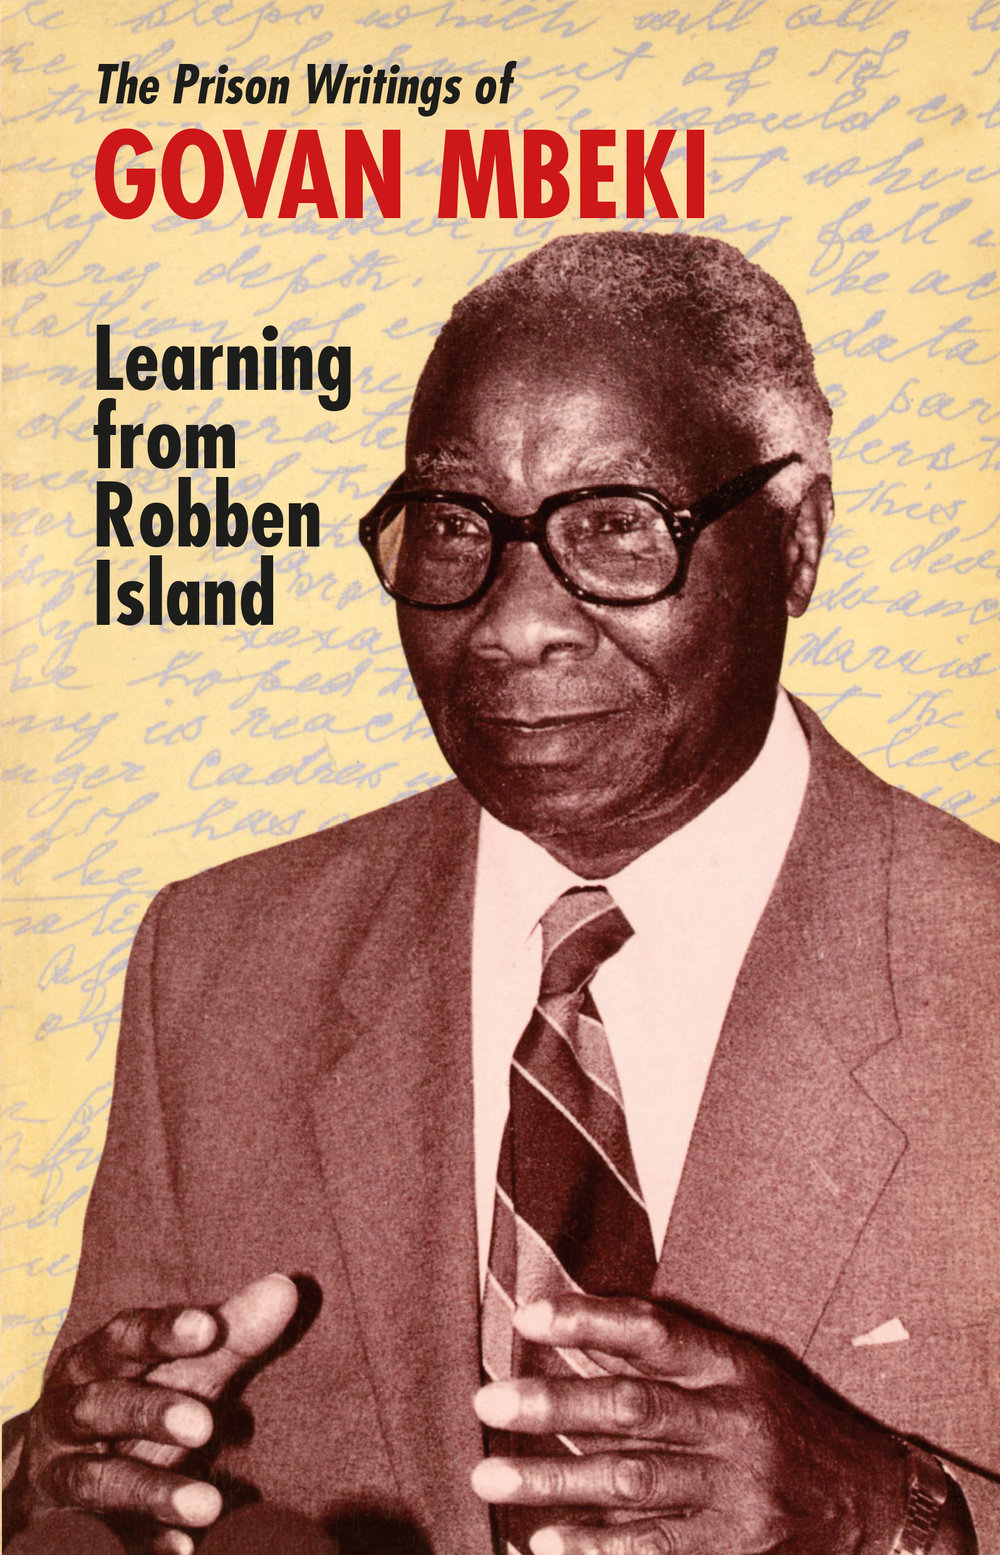 Learning from Robben Island - Govan Mbeki